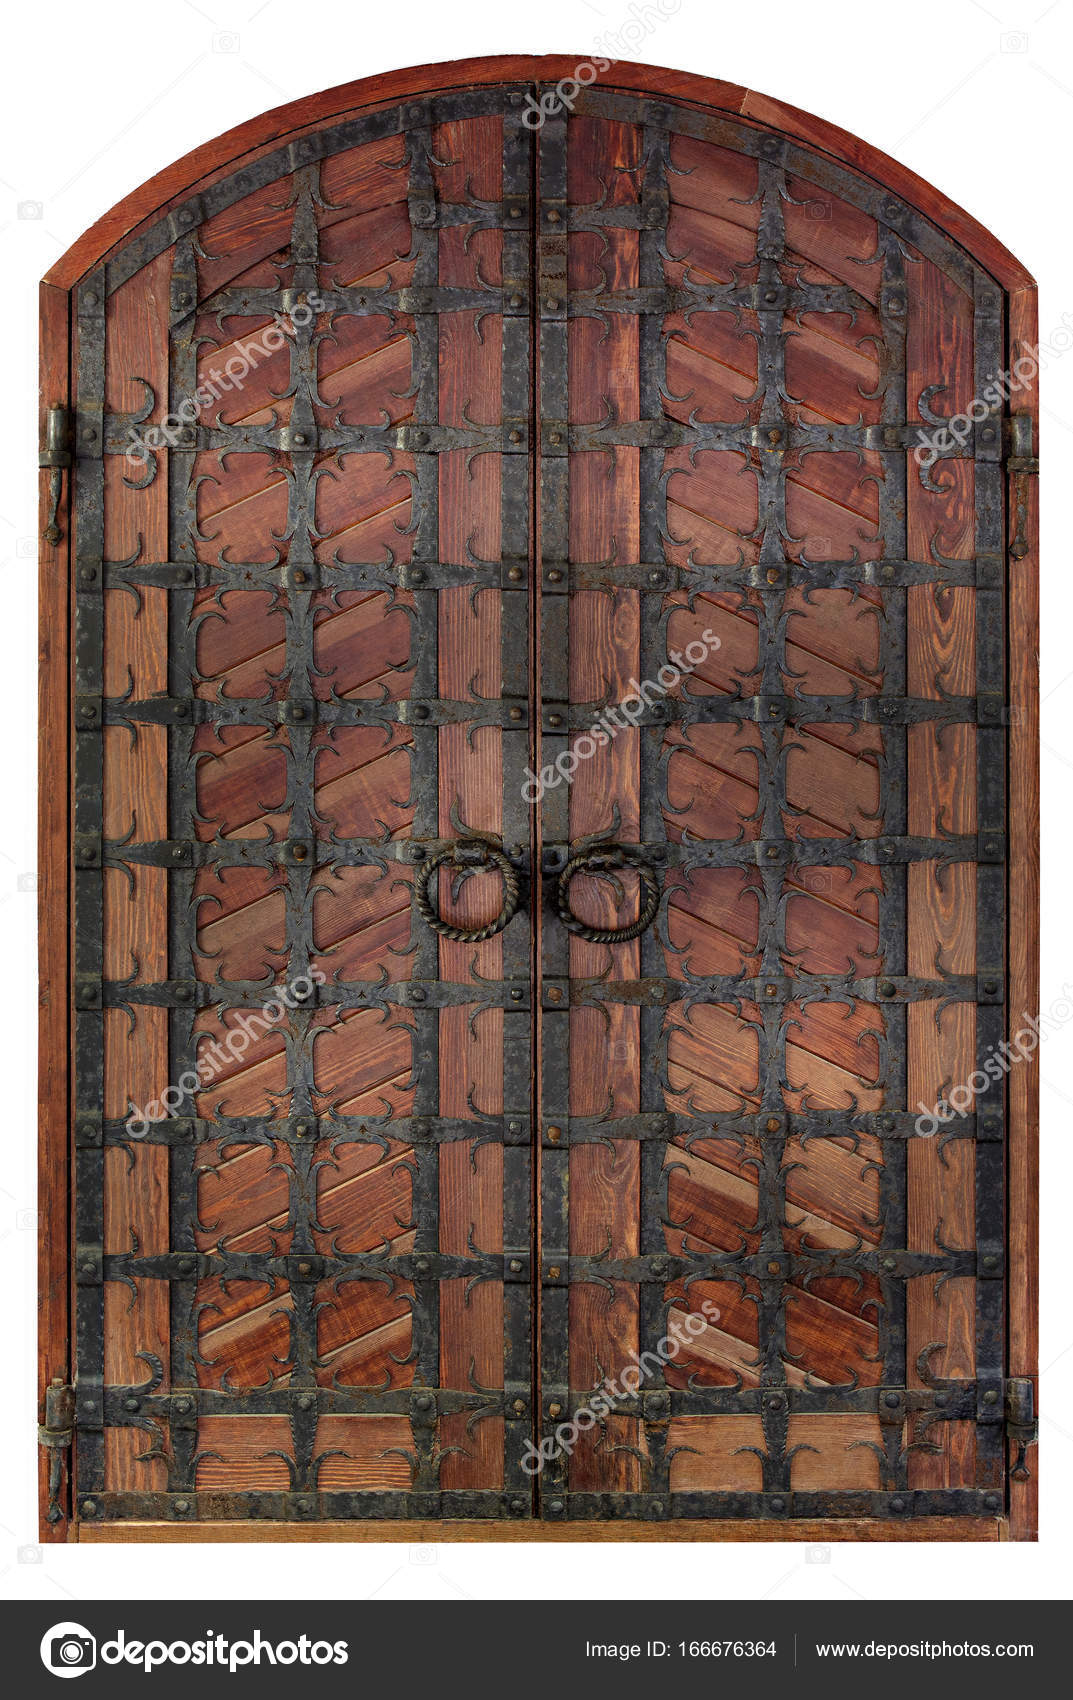 Ancient antique wooden doors are covered with wrought iron lattice ...